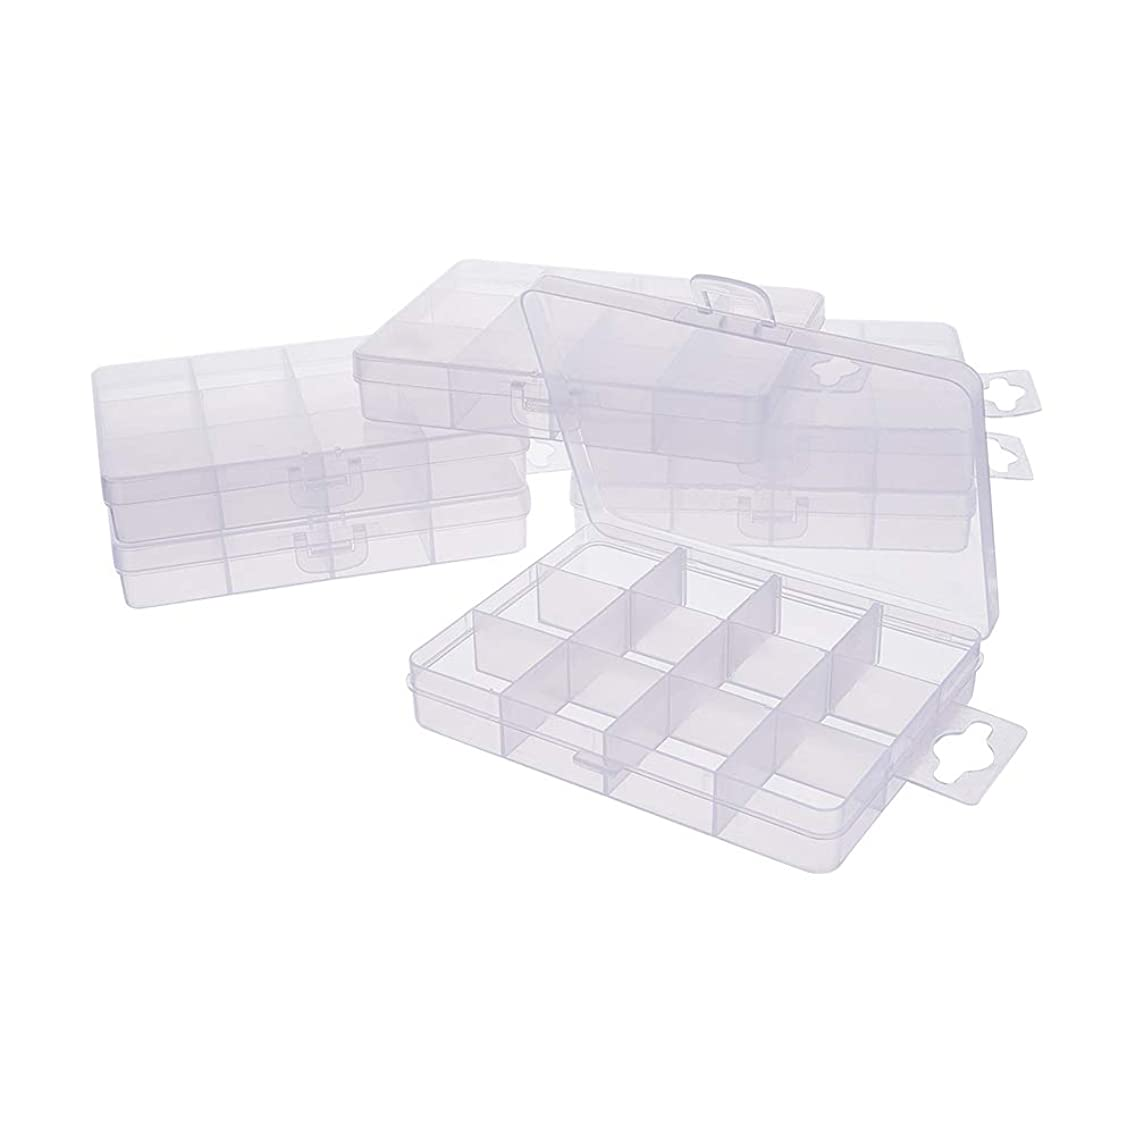 PandaHall Elite 6 Pack 12 Grids Jewelry Dividers Box Organizer Clear Plastic Bead Case Storage Container for Beads, Jewelry, Nail Art, Small Items Craft Findings 13x10x2.2cm, Compartment: 3x3cm